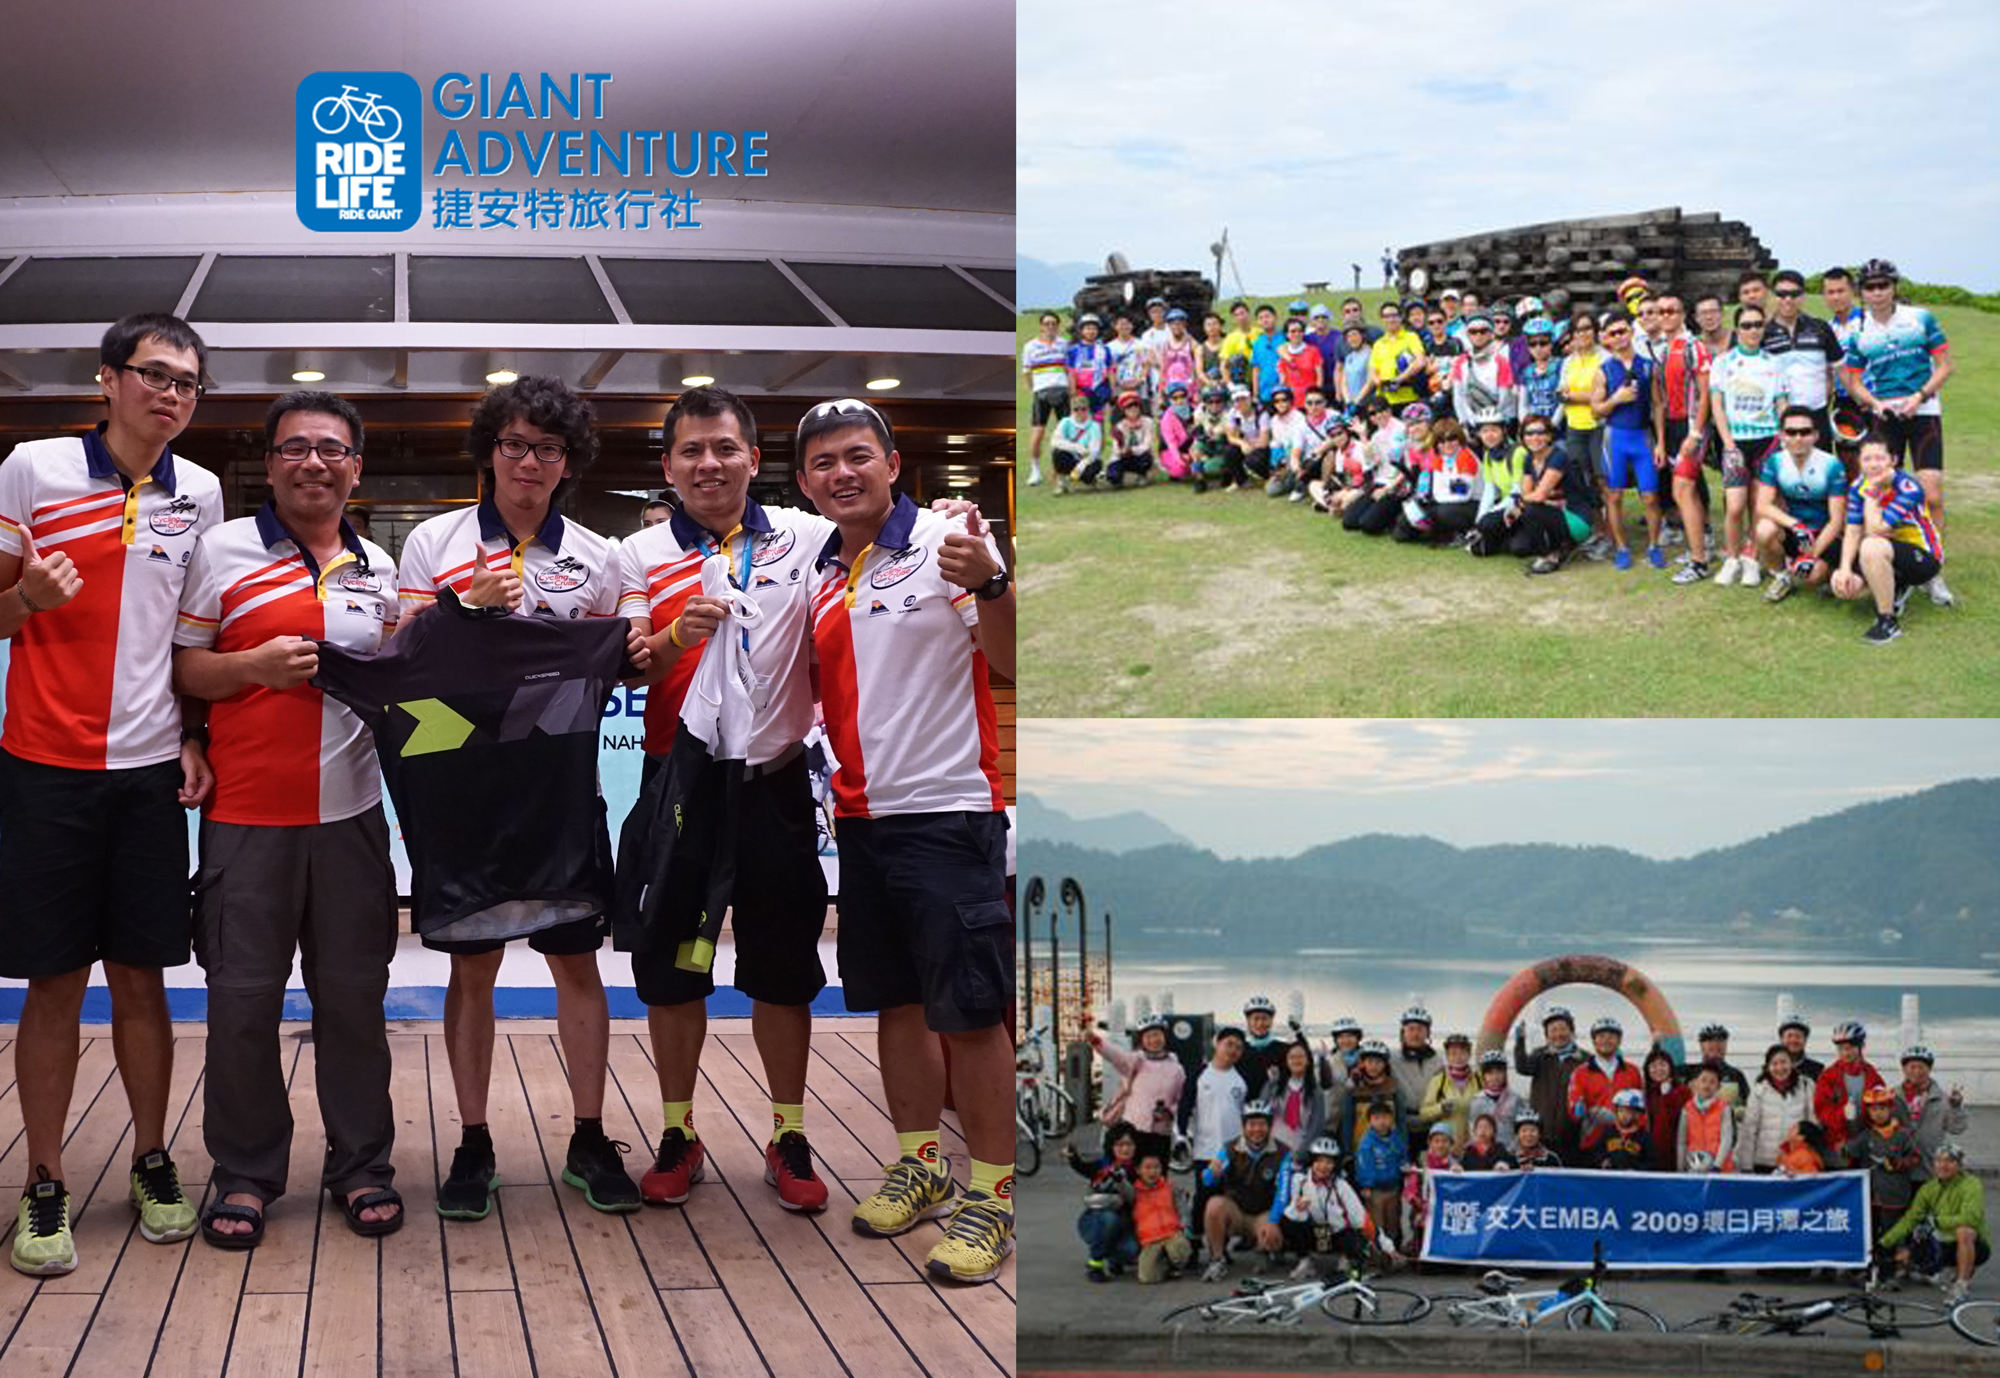 fc7ba9d68838 Giant Adventure offers fixed departure dates from Taichung and Taipei for  their Round Island Tours. These tours range from 9 days to 15 days  depending on ...